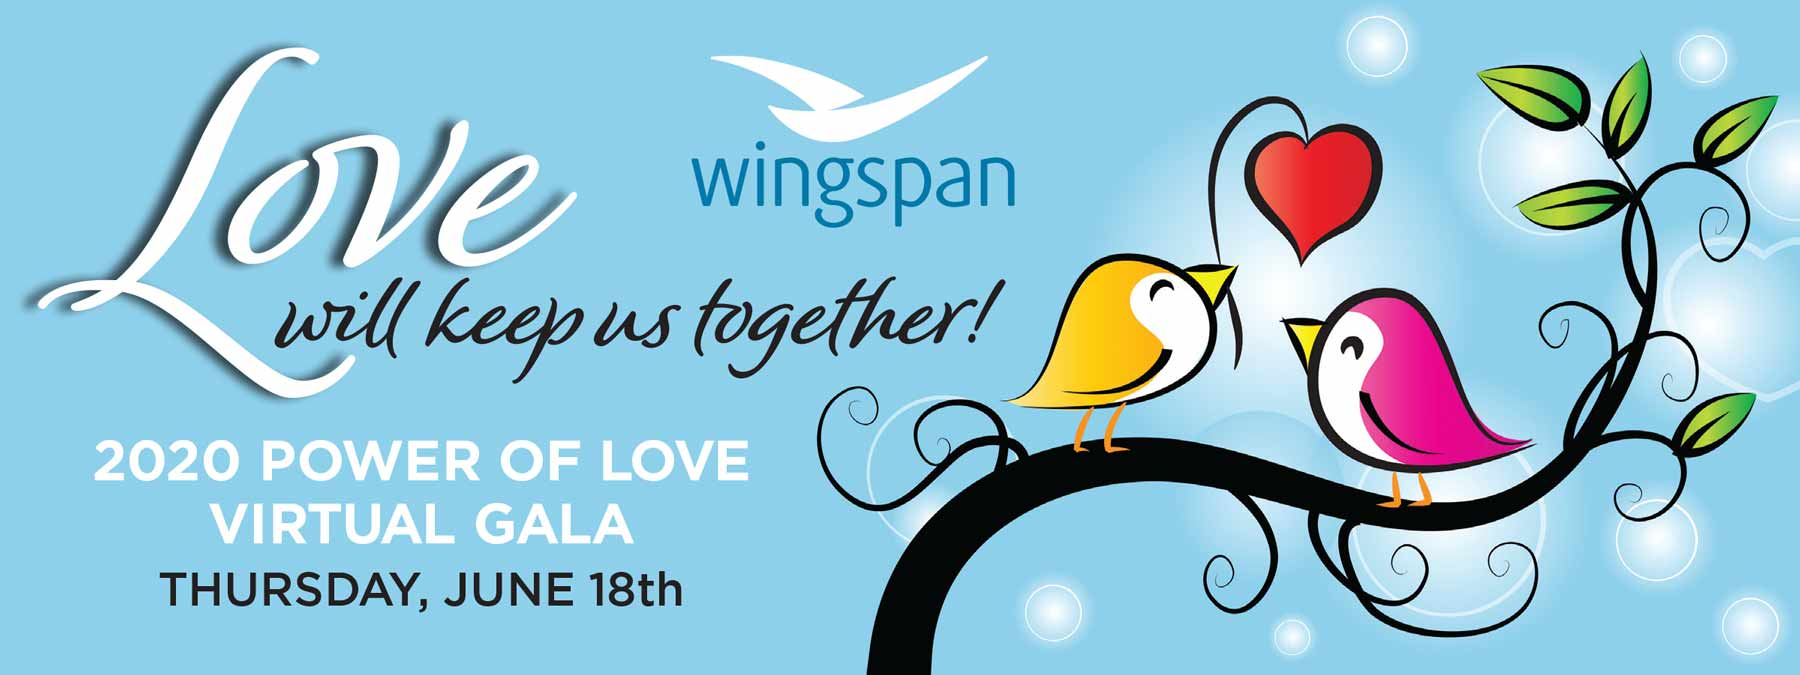 wingspan-2020-virtual-gala-banner